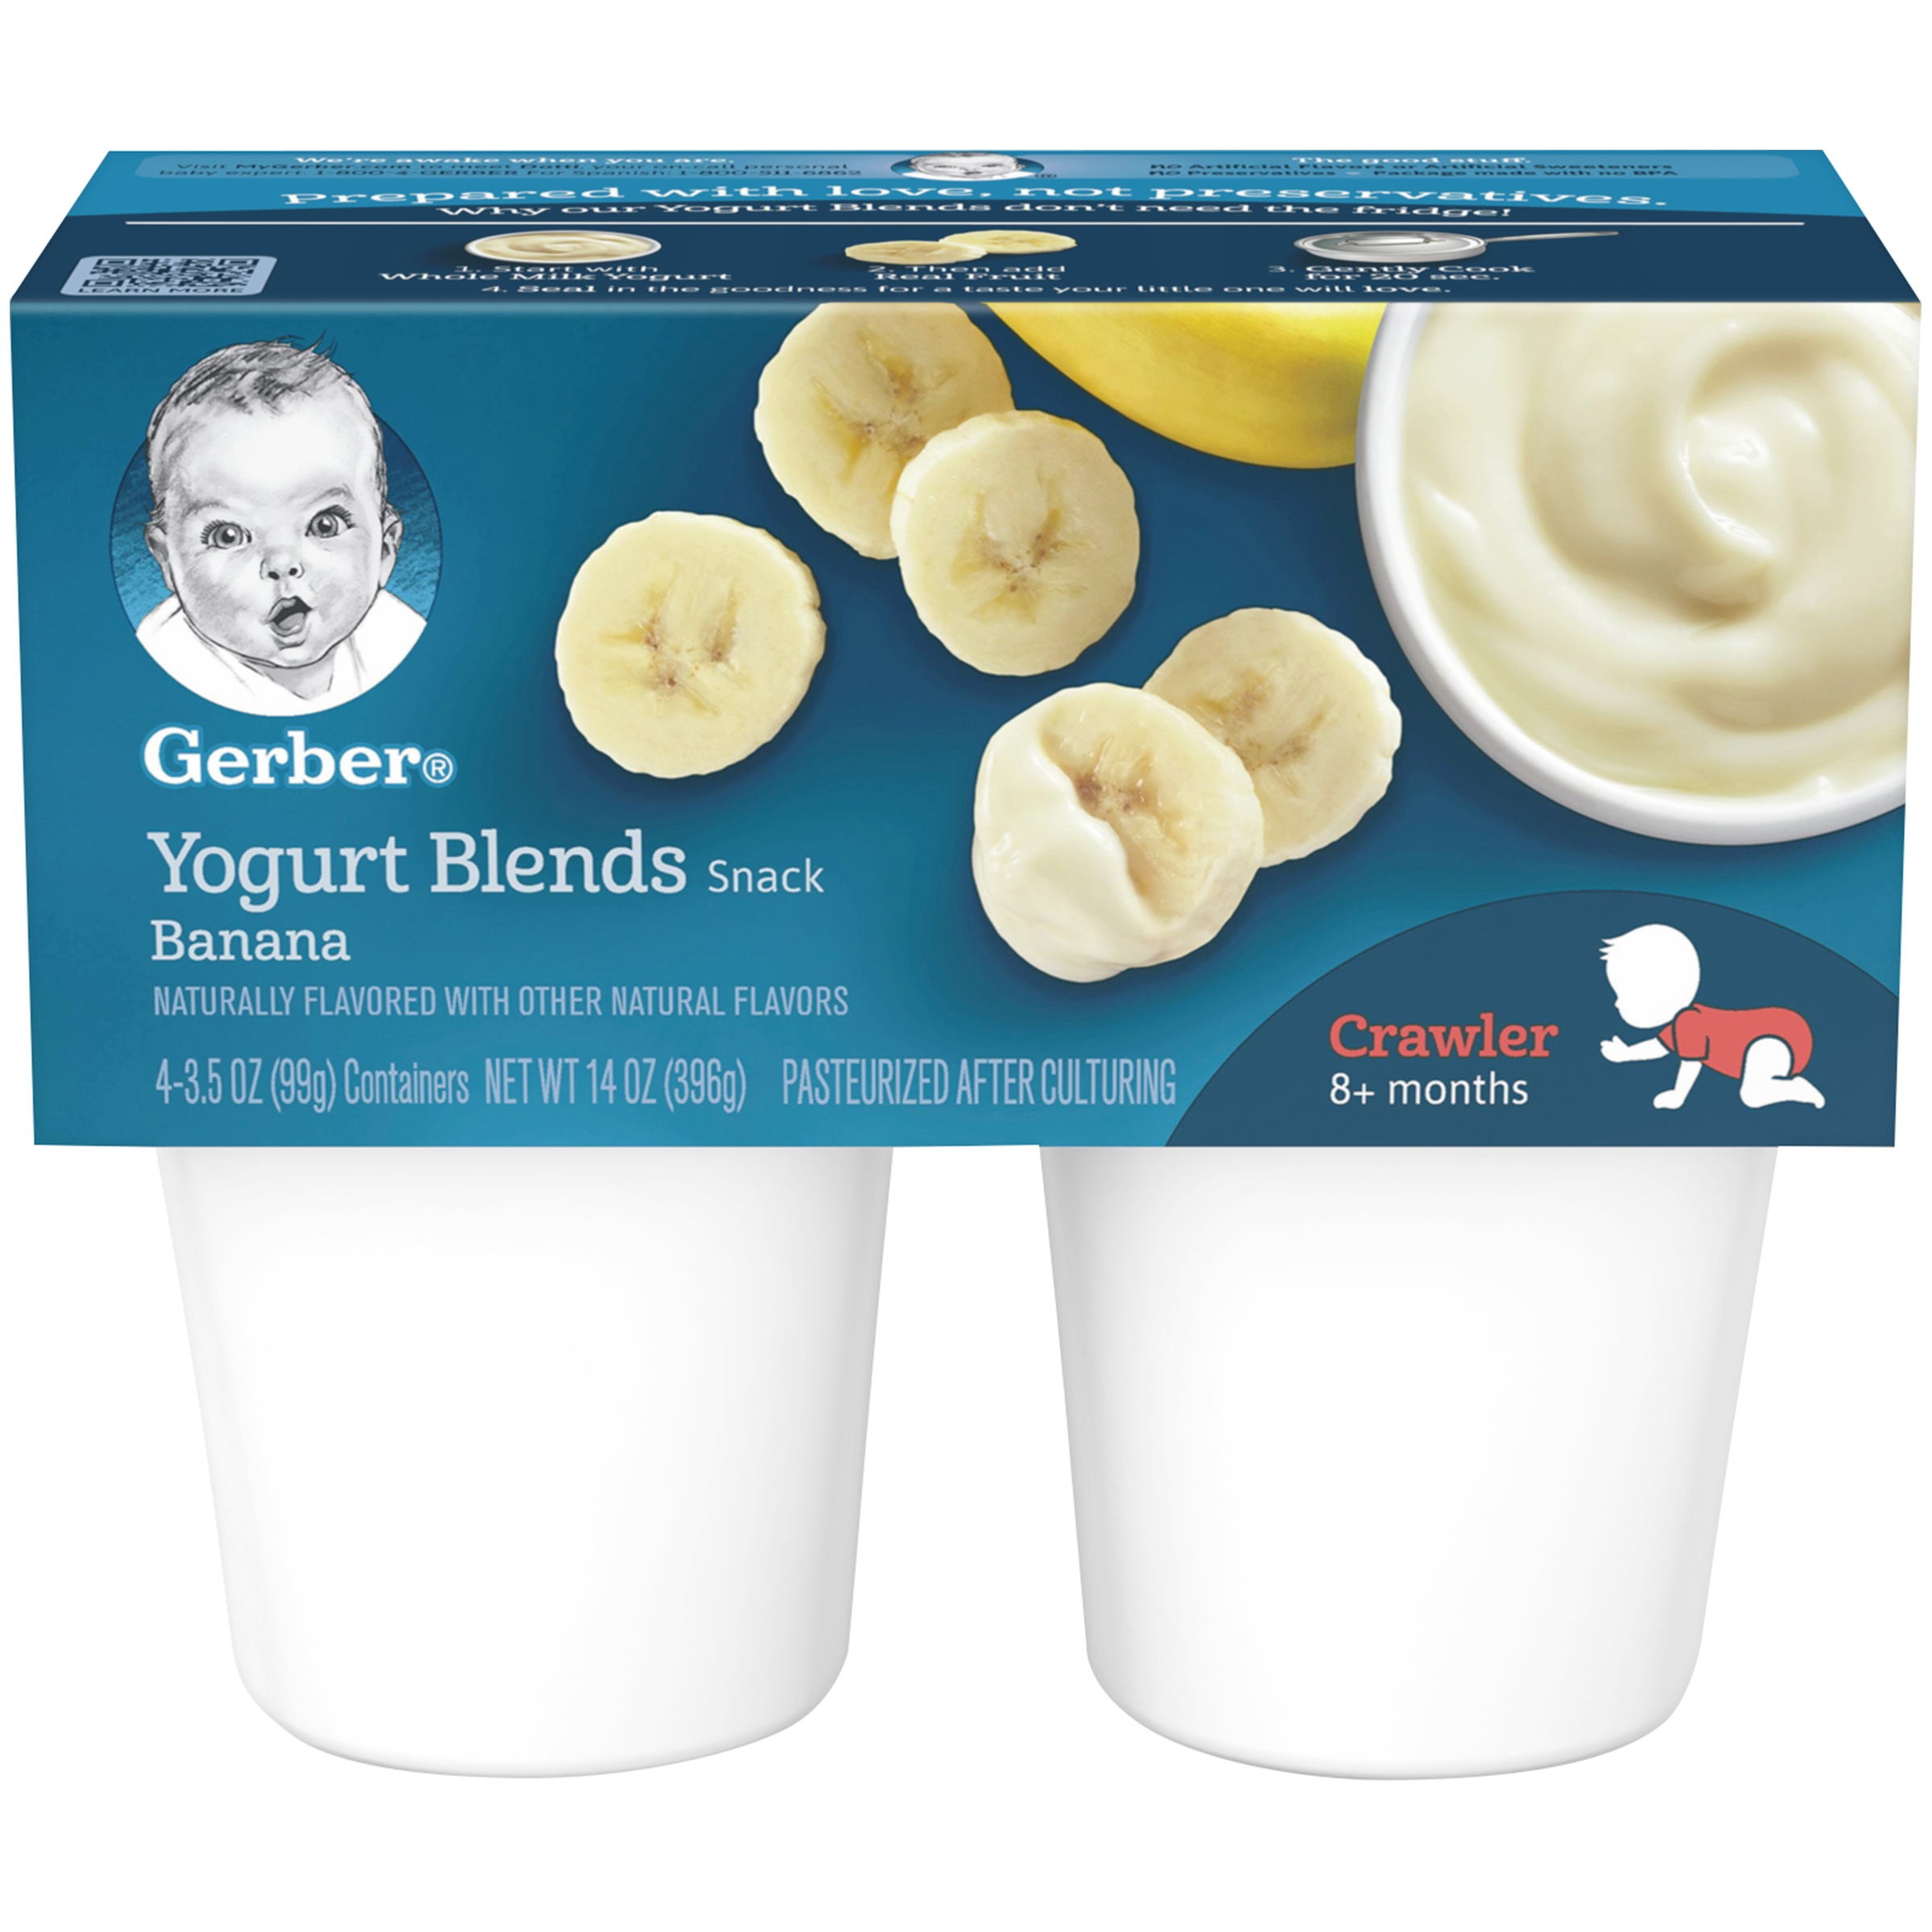 Gerber Yogurt Blends Snack Banana Yogurt 4-3.5 oz. Cups